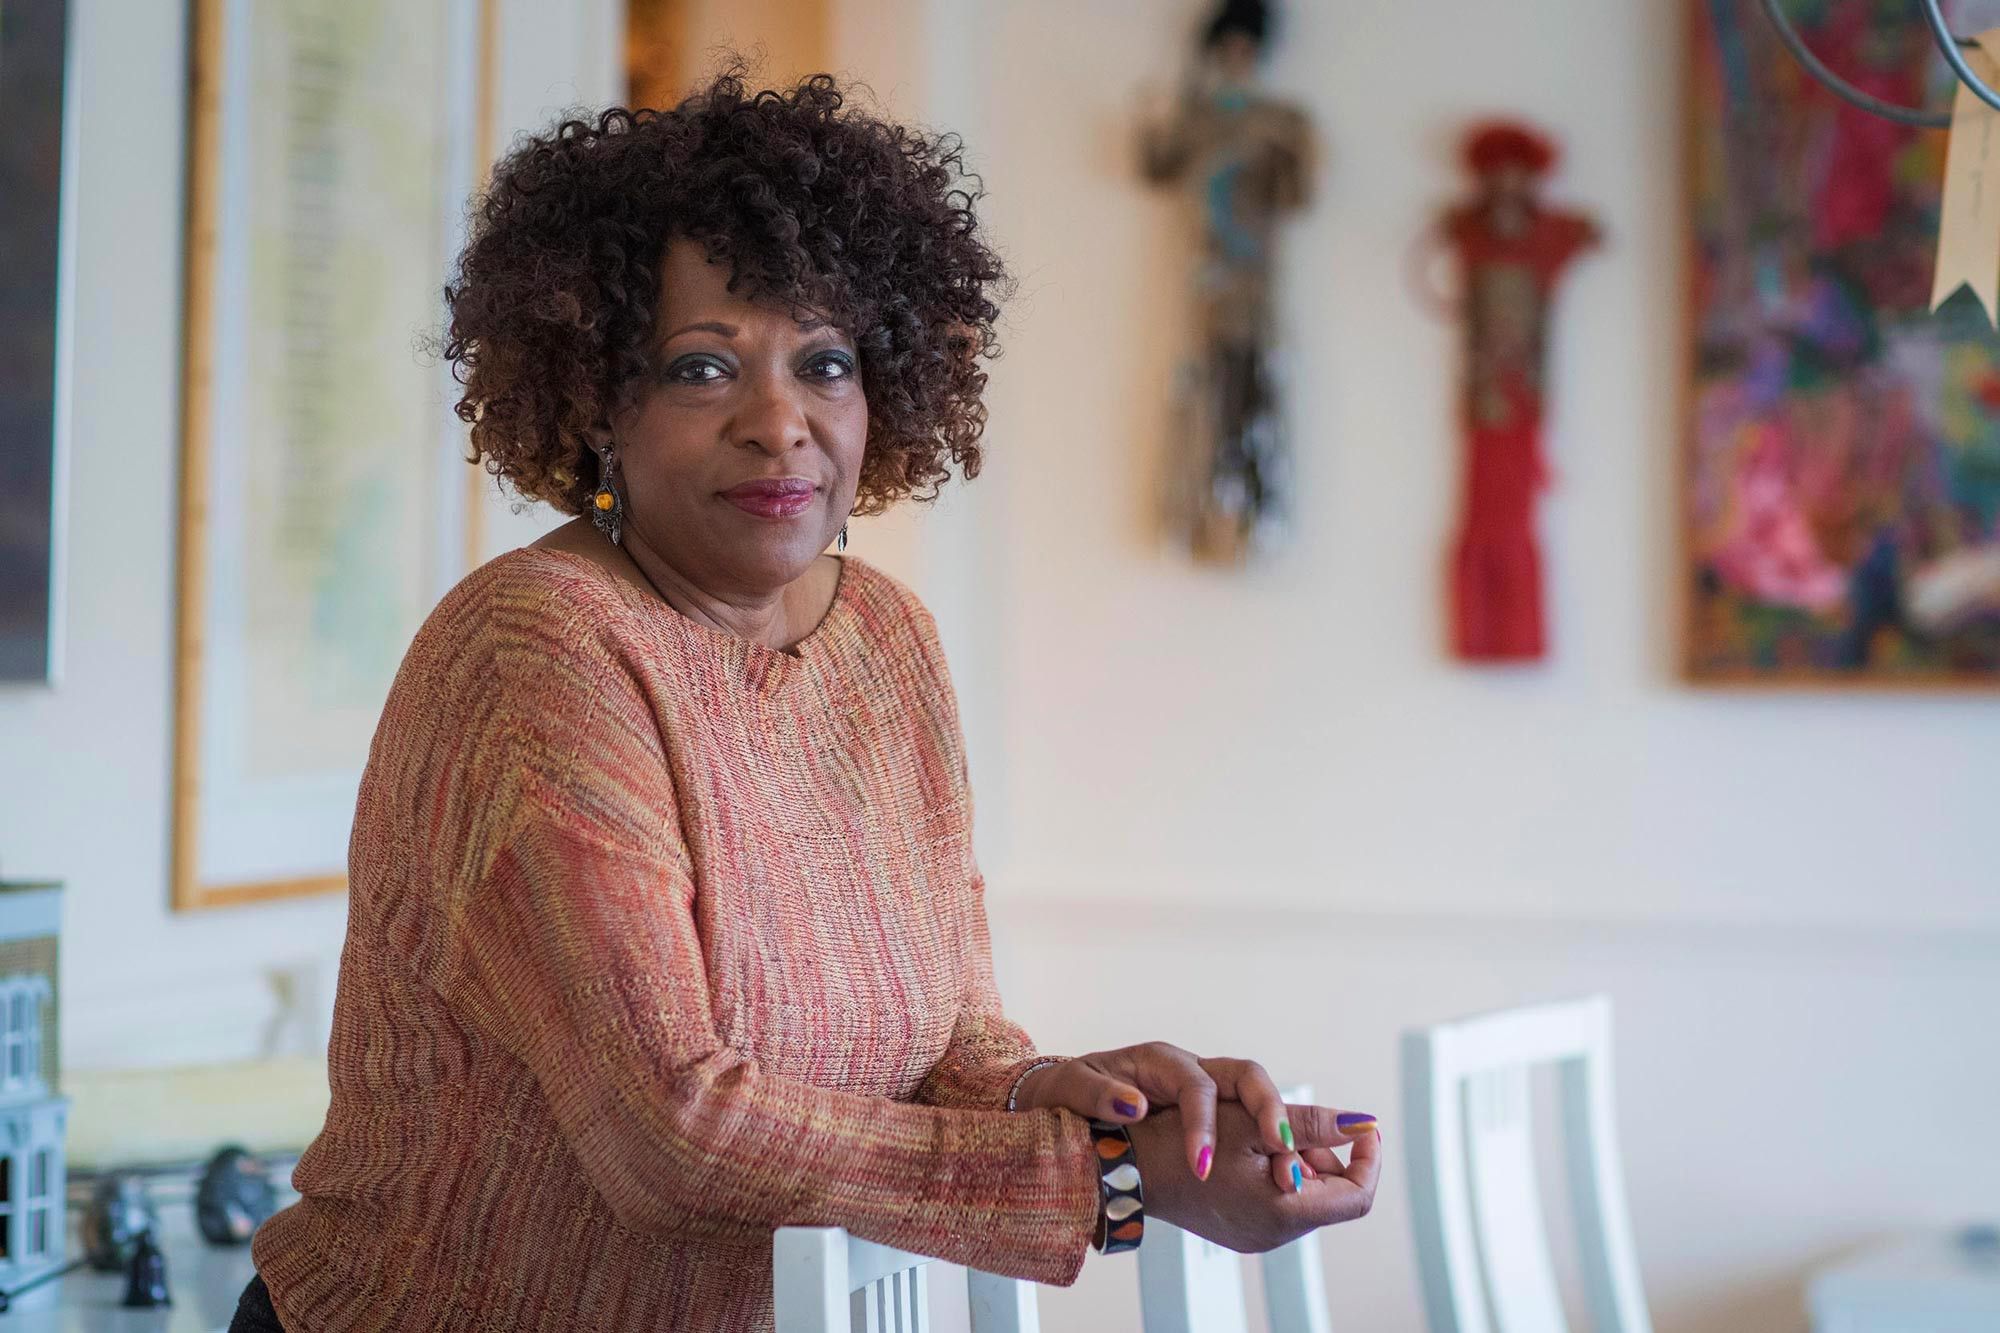 """Rita Dove's poem """"Wingfoot Lake"""" appears on giant a stage screen as U2 concert-goers enter the stadium, one of several in the pre-show audiovisual program."""